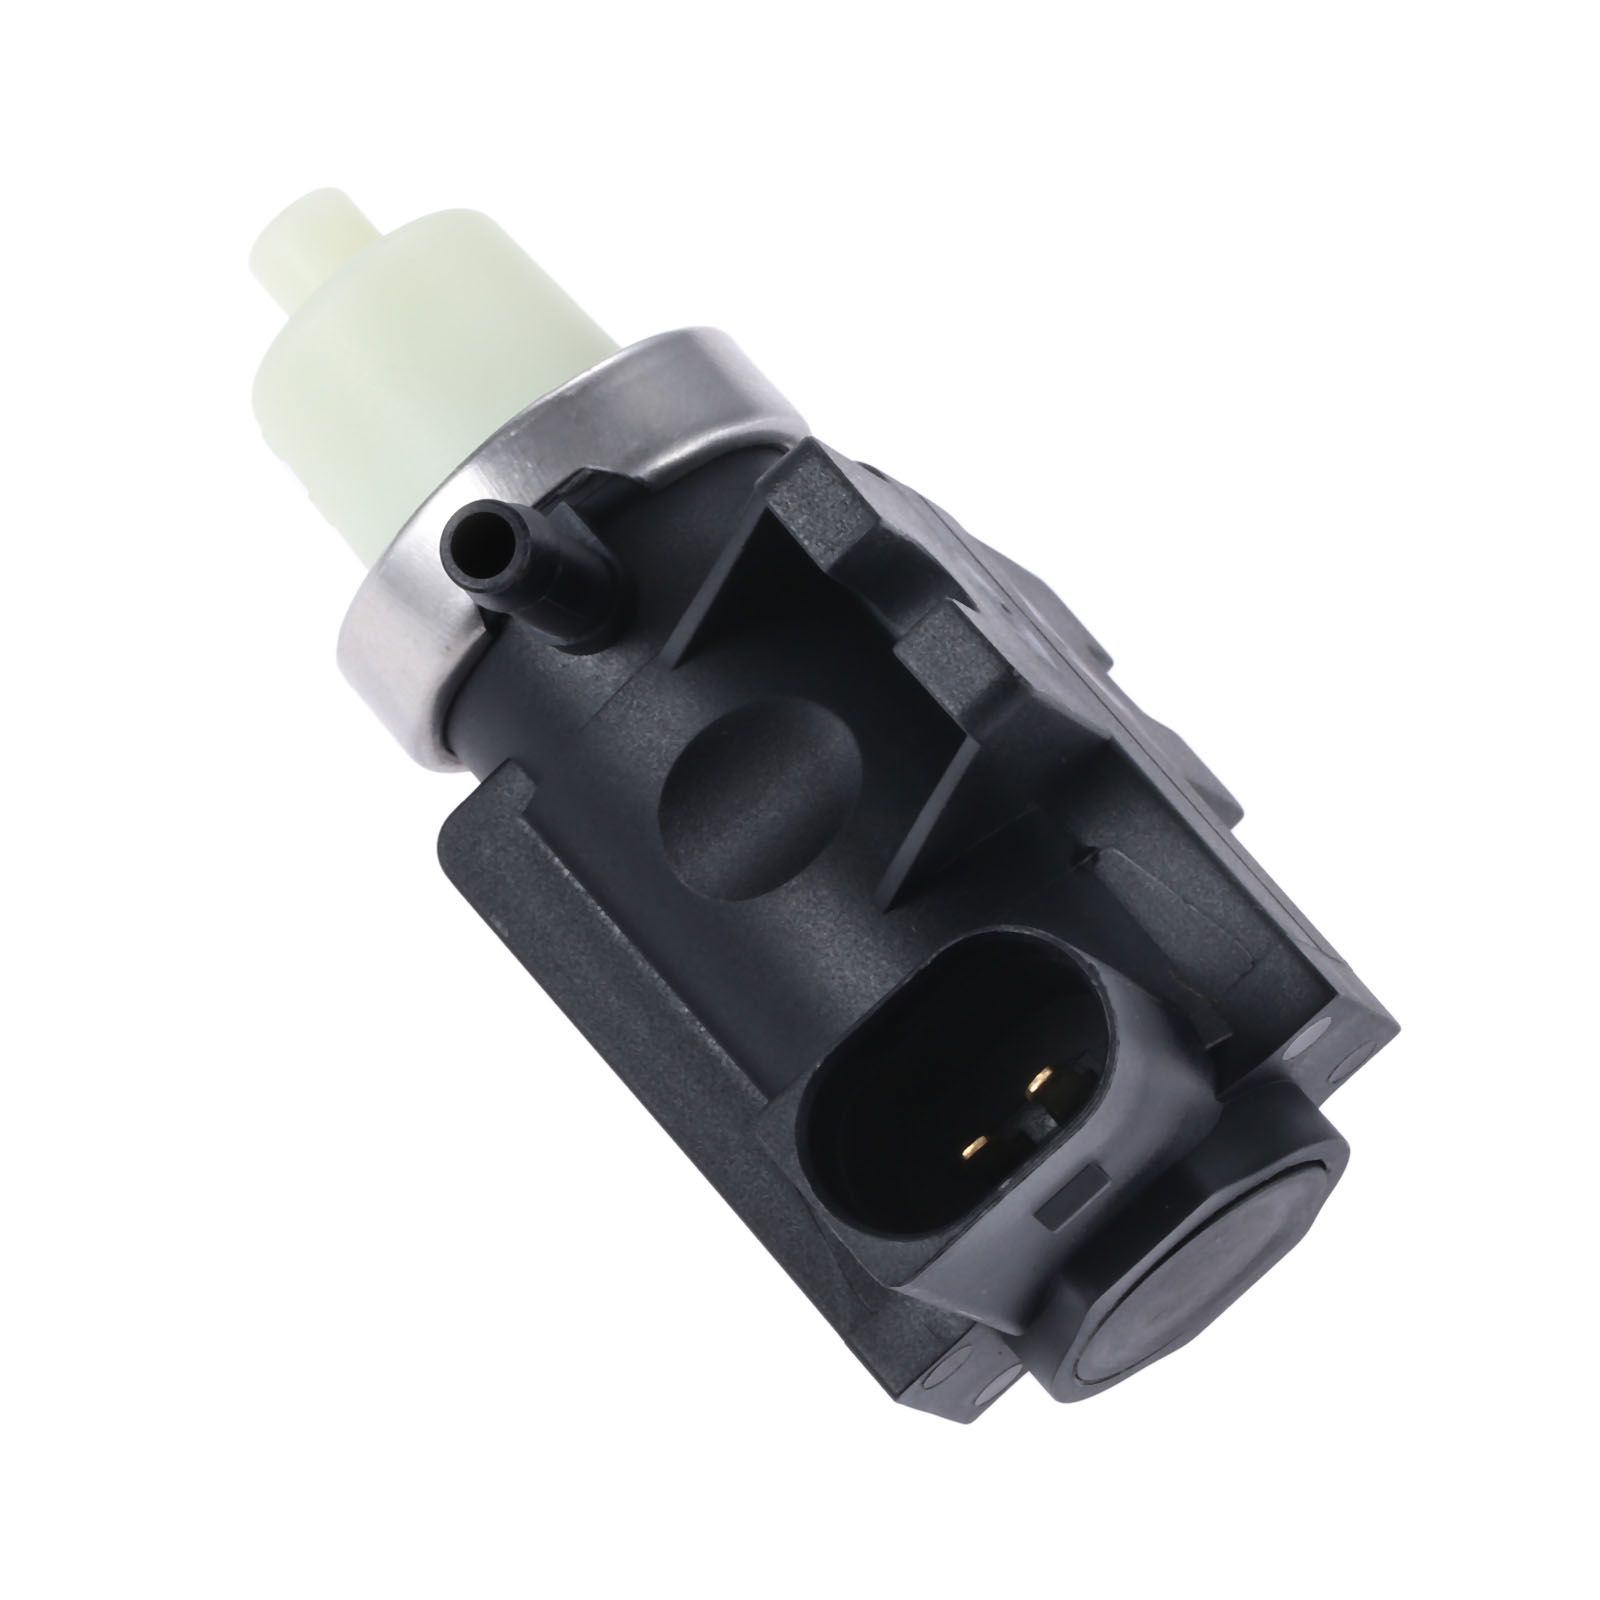 Image 4 - Yetaha 1J0906627A New Boost Pressure Solenoid Converter Valve For VW For Jetta Sedan Wagon TDI Passat Beetle Golf TDI 2000 2006-in Exhaust Gas Recirculation Valve from Automobiles & Motorcycles